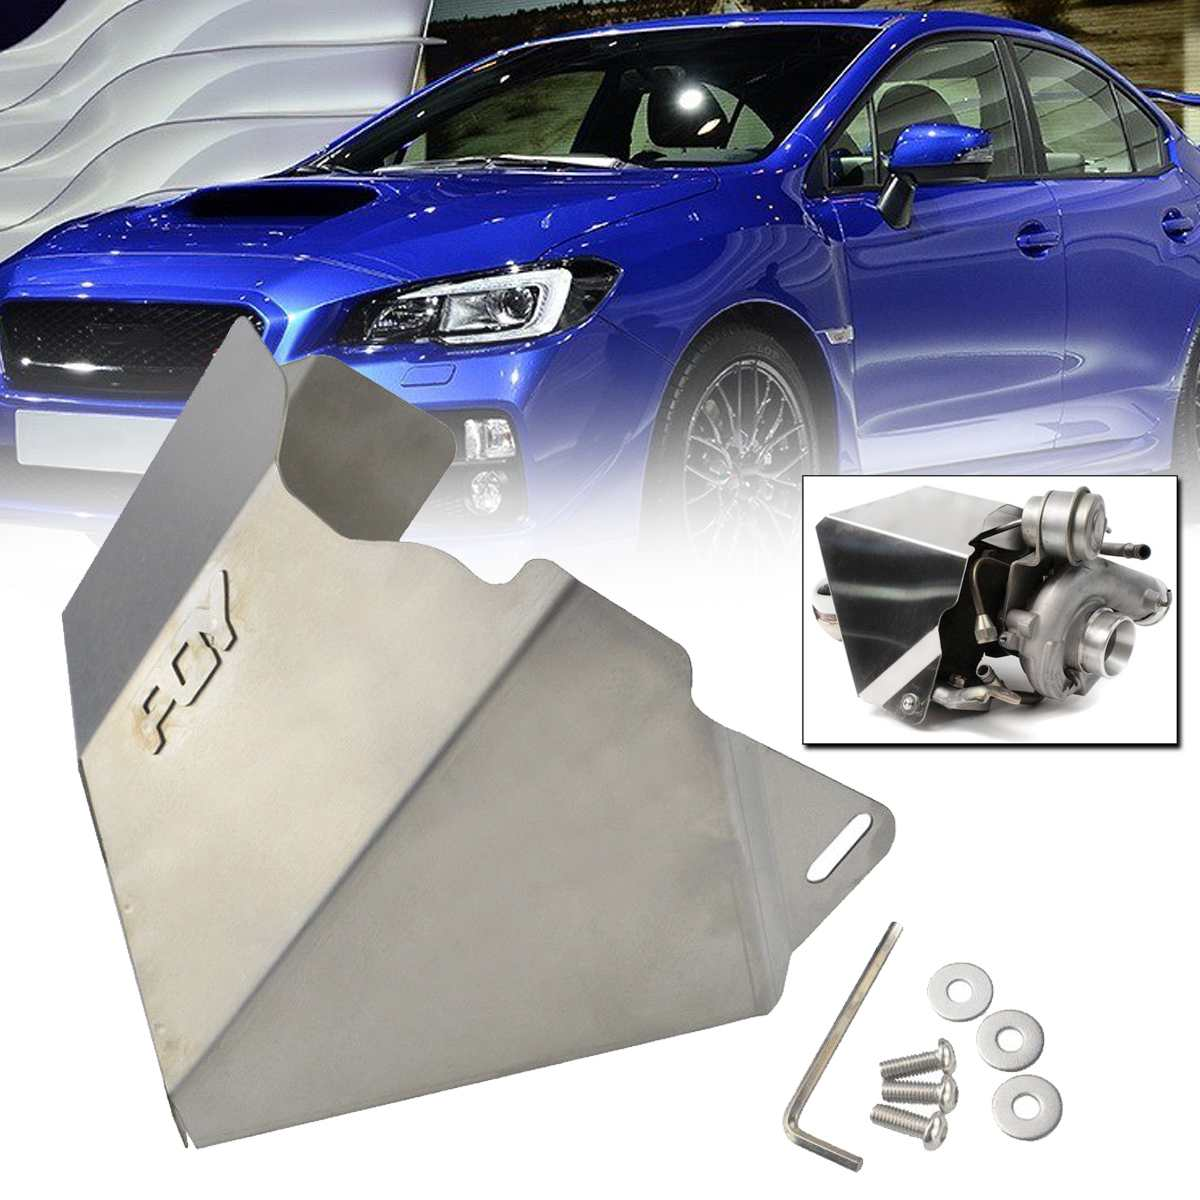 Turbocharger Turbo Heat Shield Cover For Subaru WRX 02 14 / STi 04 18 /For Legacy GT 05 15 / Forester XT 10 16 Shield Blanket